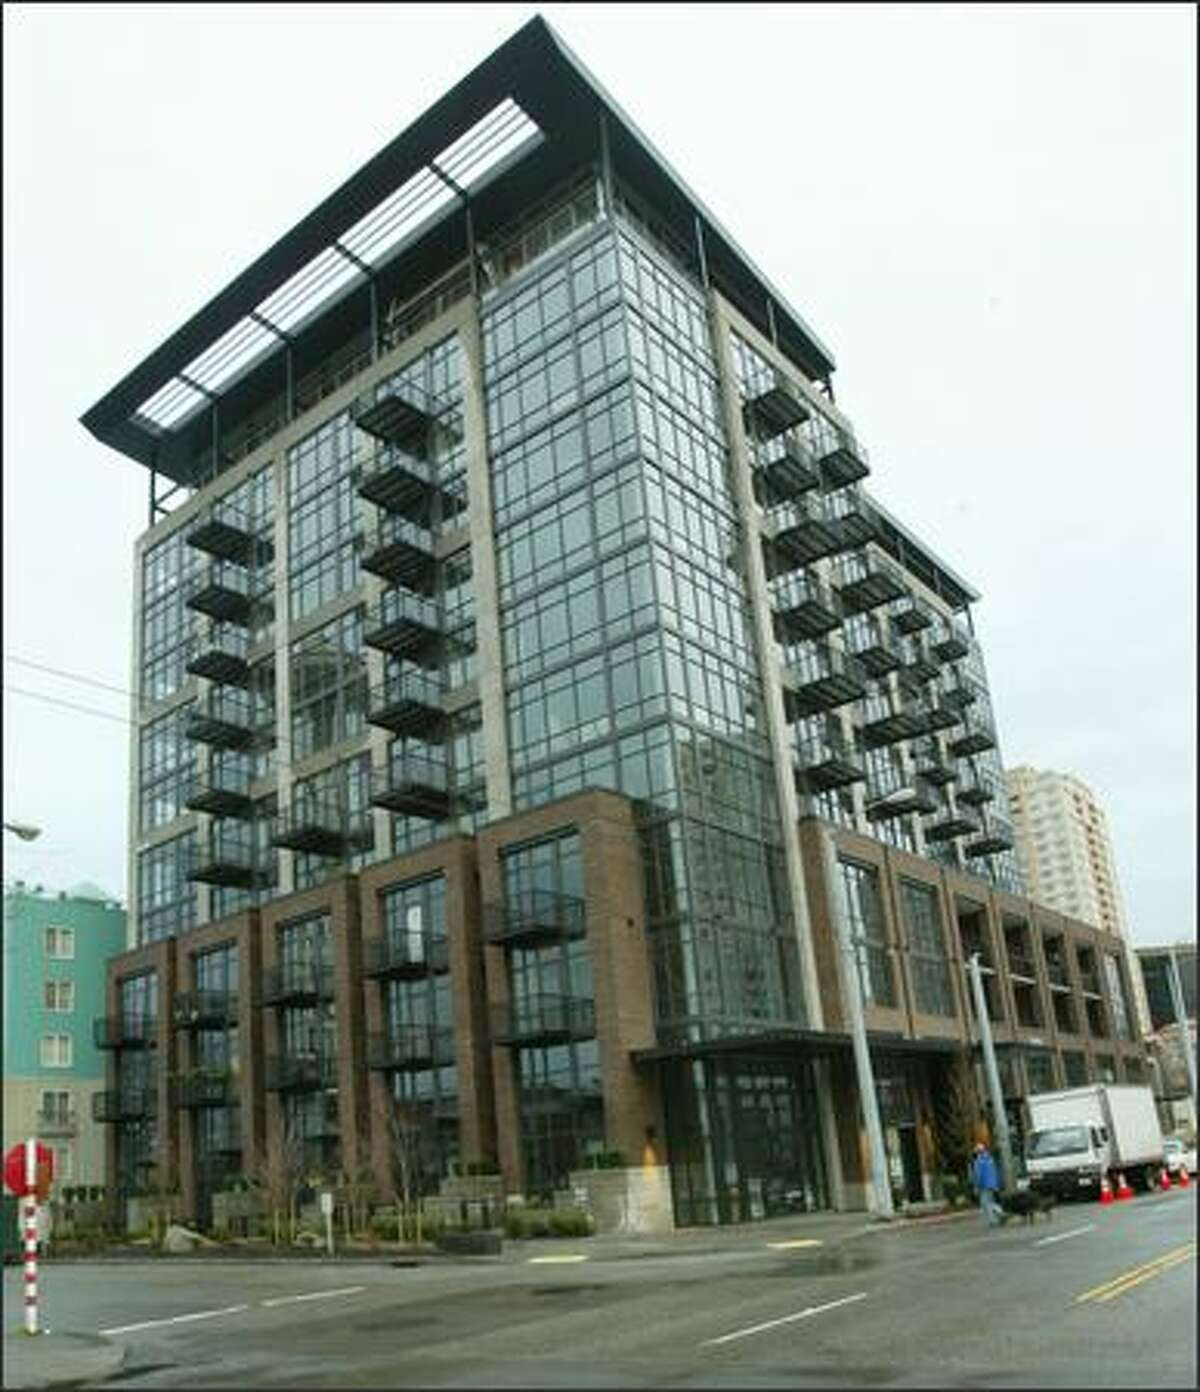 Belltown's Mosler Lofts is the most provocative residential high-rise in Seattle since WWII.